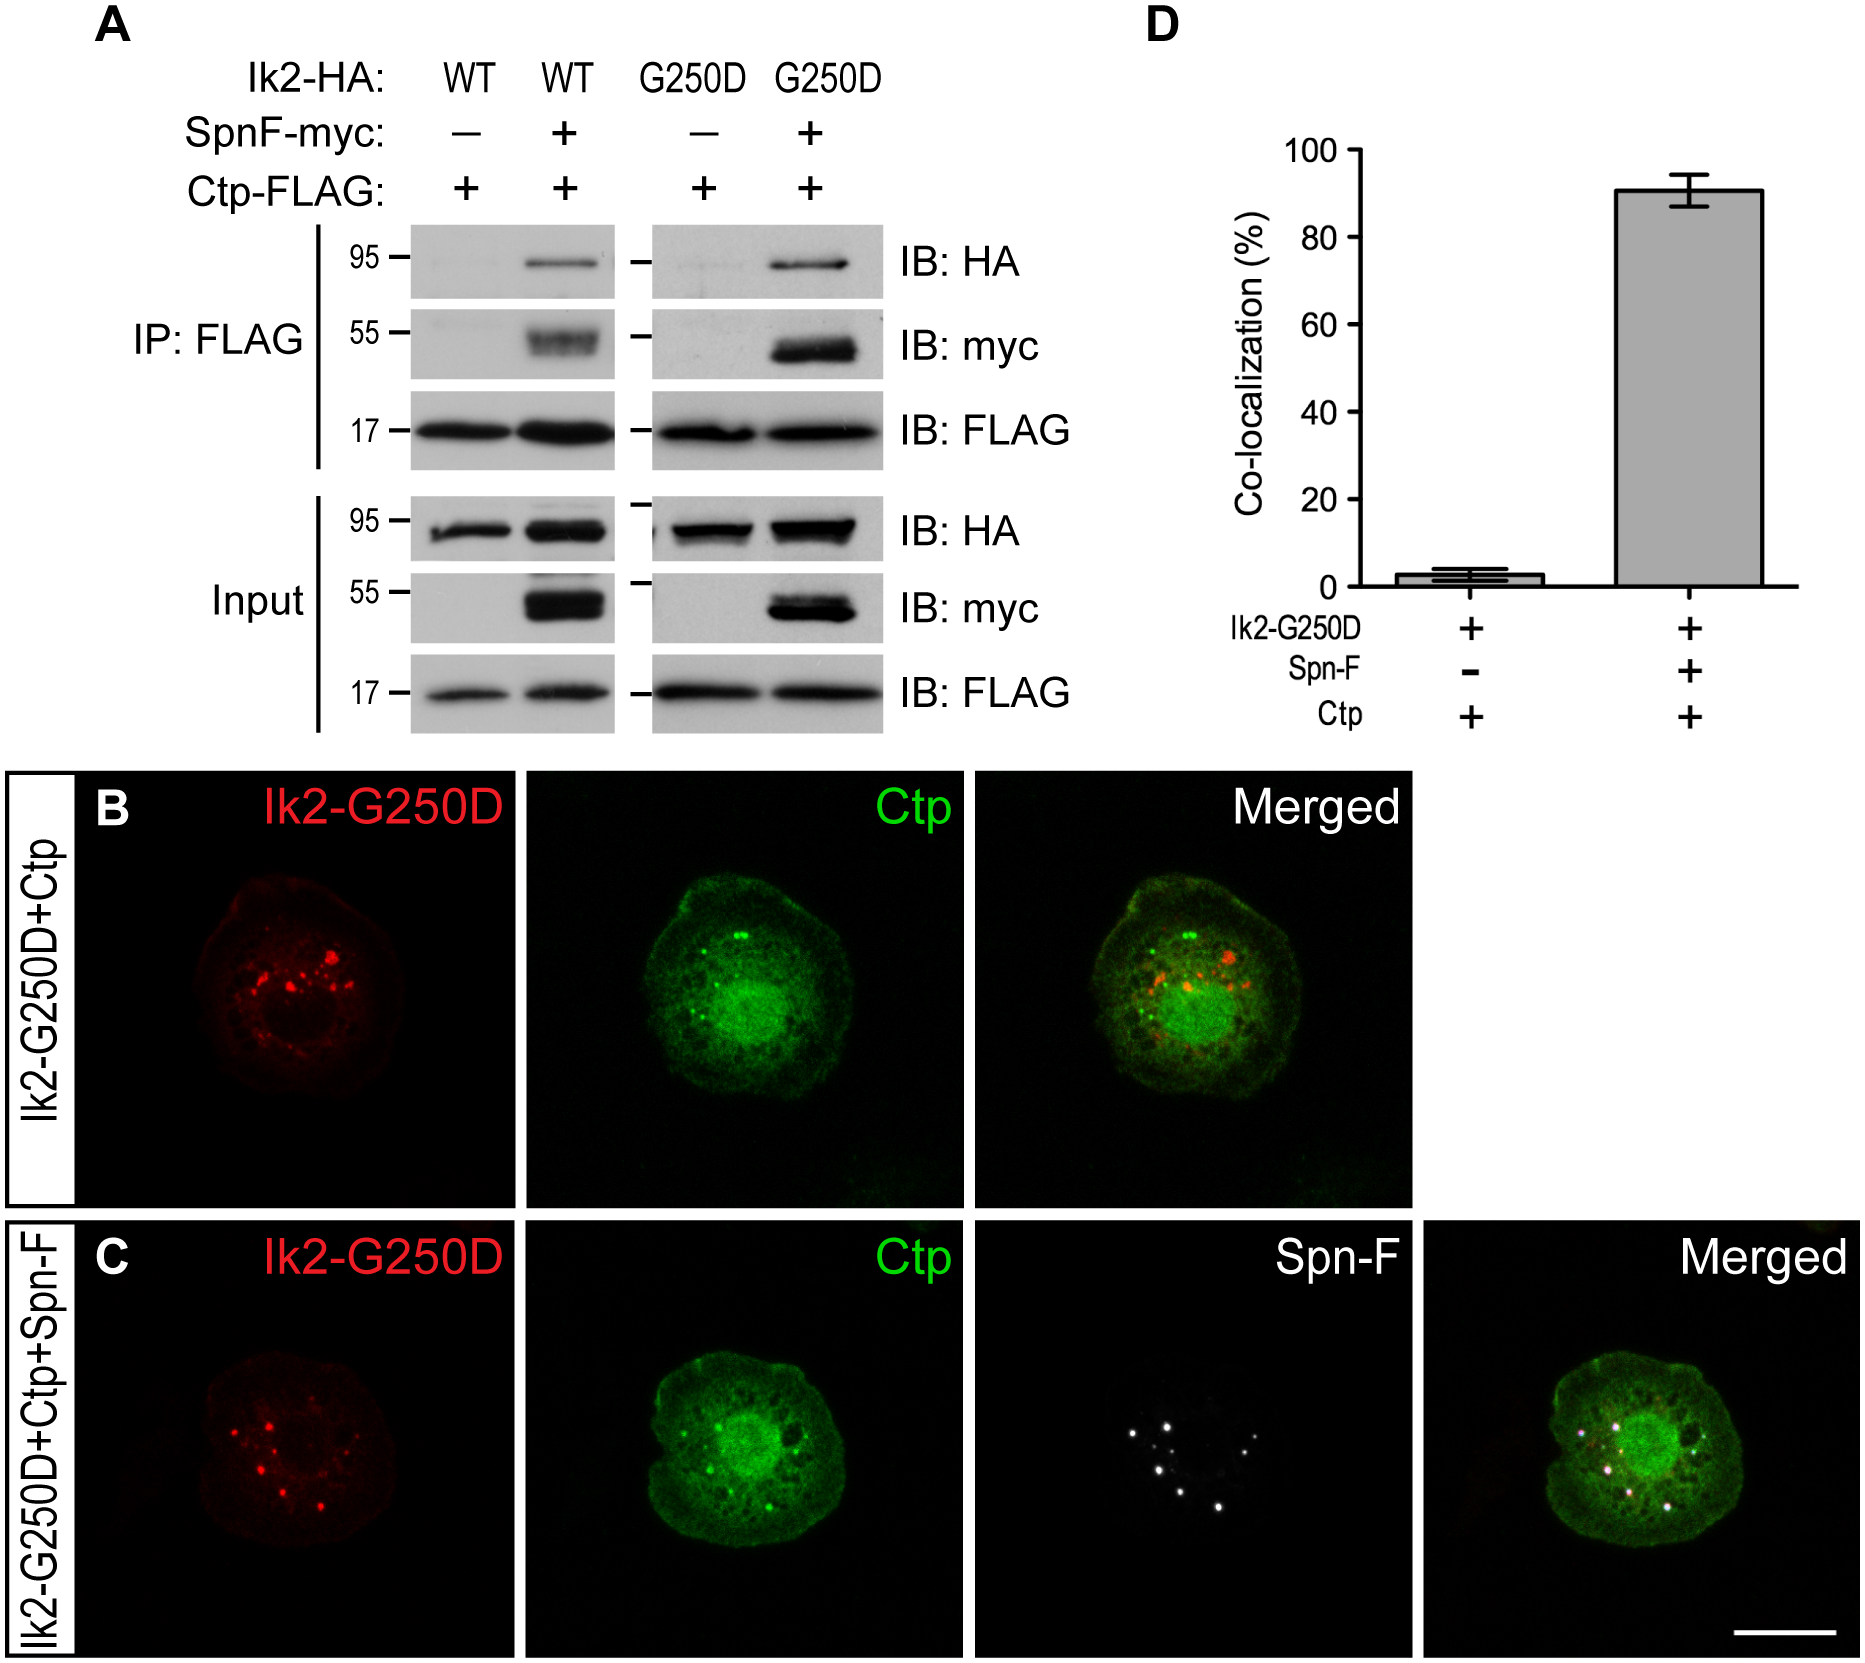 Spn-F links Ik2 kinase to dynein complexes via SpnF/Ctp interaction.